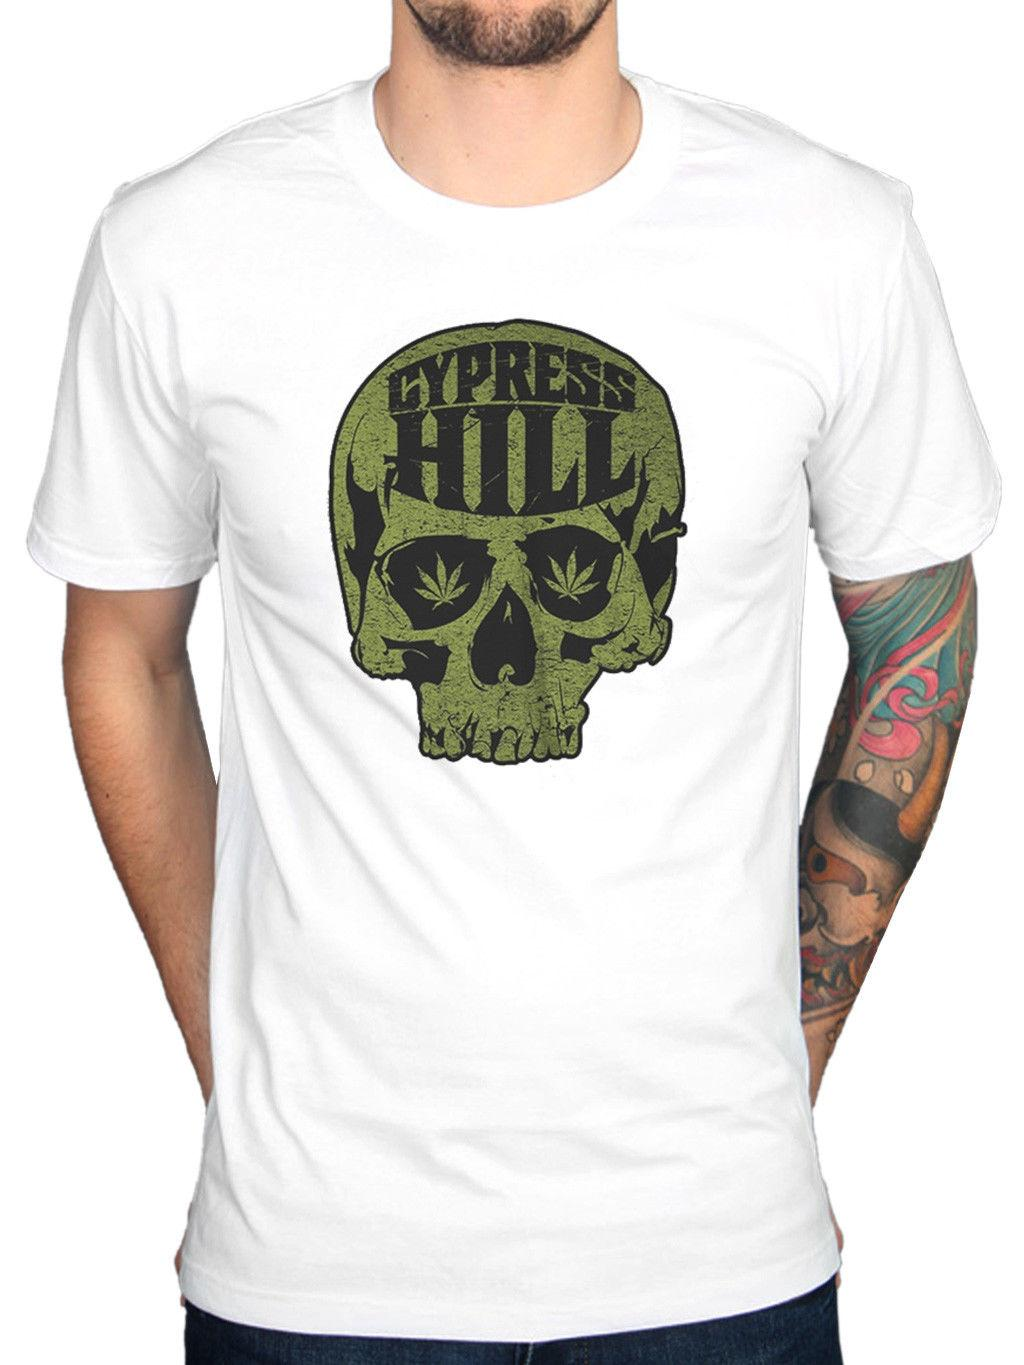 fa85651be2f79 Official Cypress Hill Skull Logo T Shirt Skull And Bones Black Sunday Rise  Up Cheap T Shirts For Sale Online One Day Only T Shirts From Thgraphics